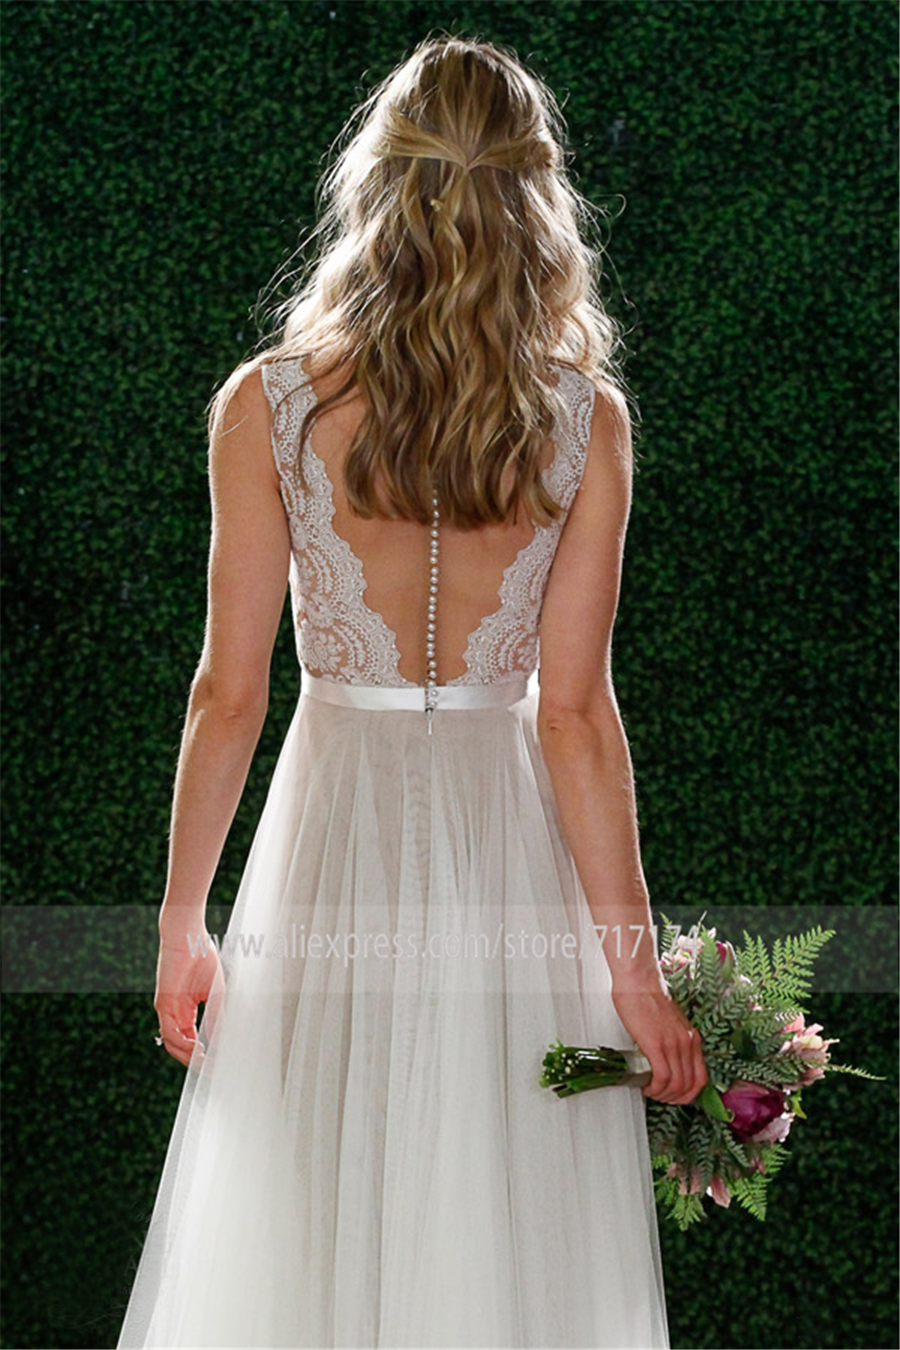 V-Neck Lace & Tulle Long Beach Wedding Dresses Floor Length Sleeves Grey Bride Dress Illusion Back with Buttons